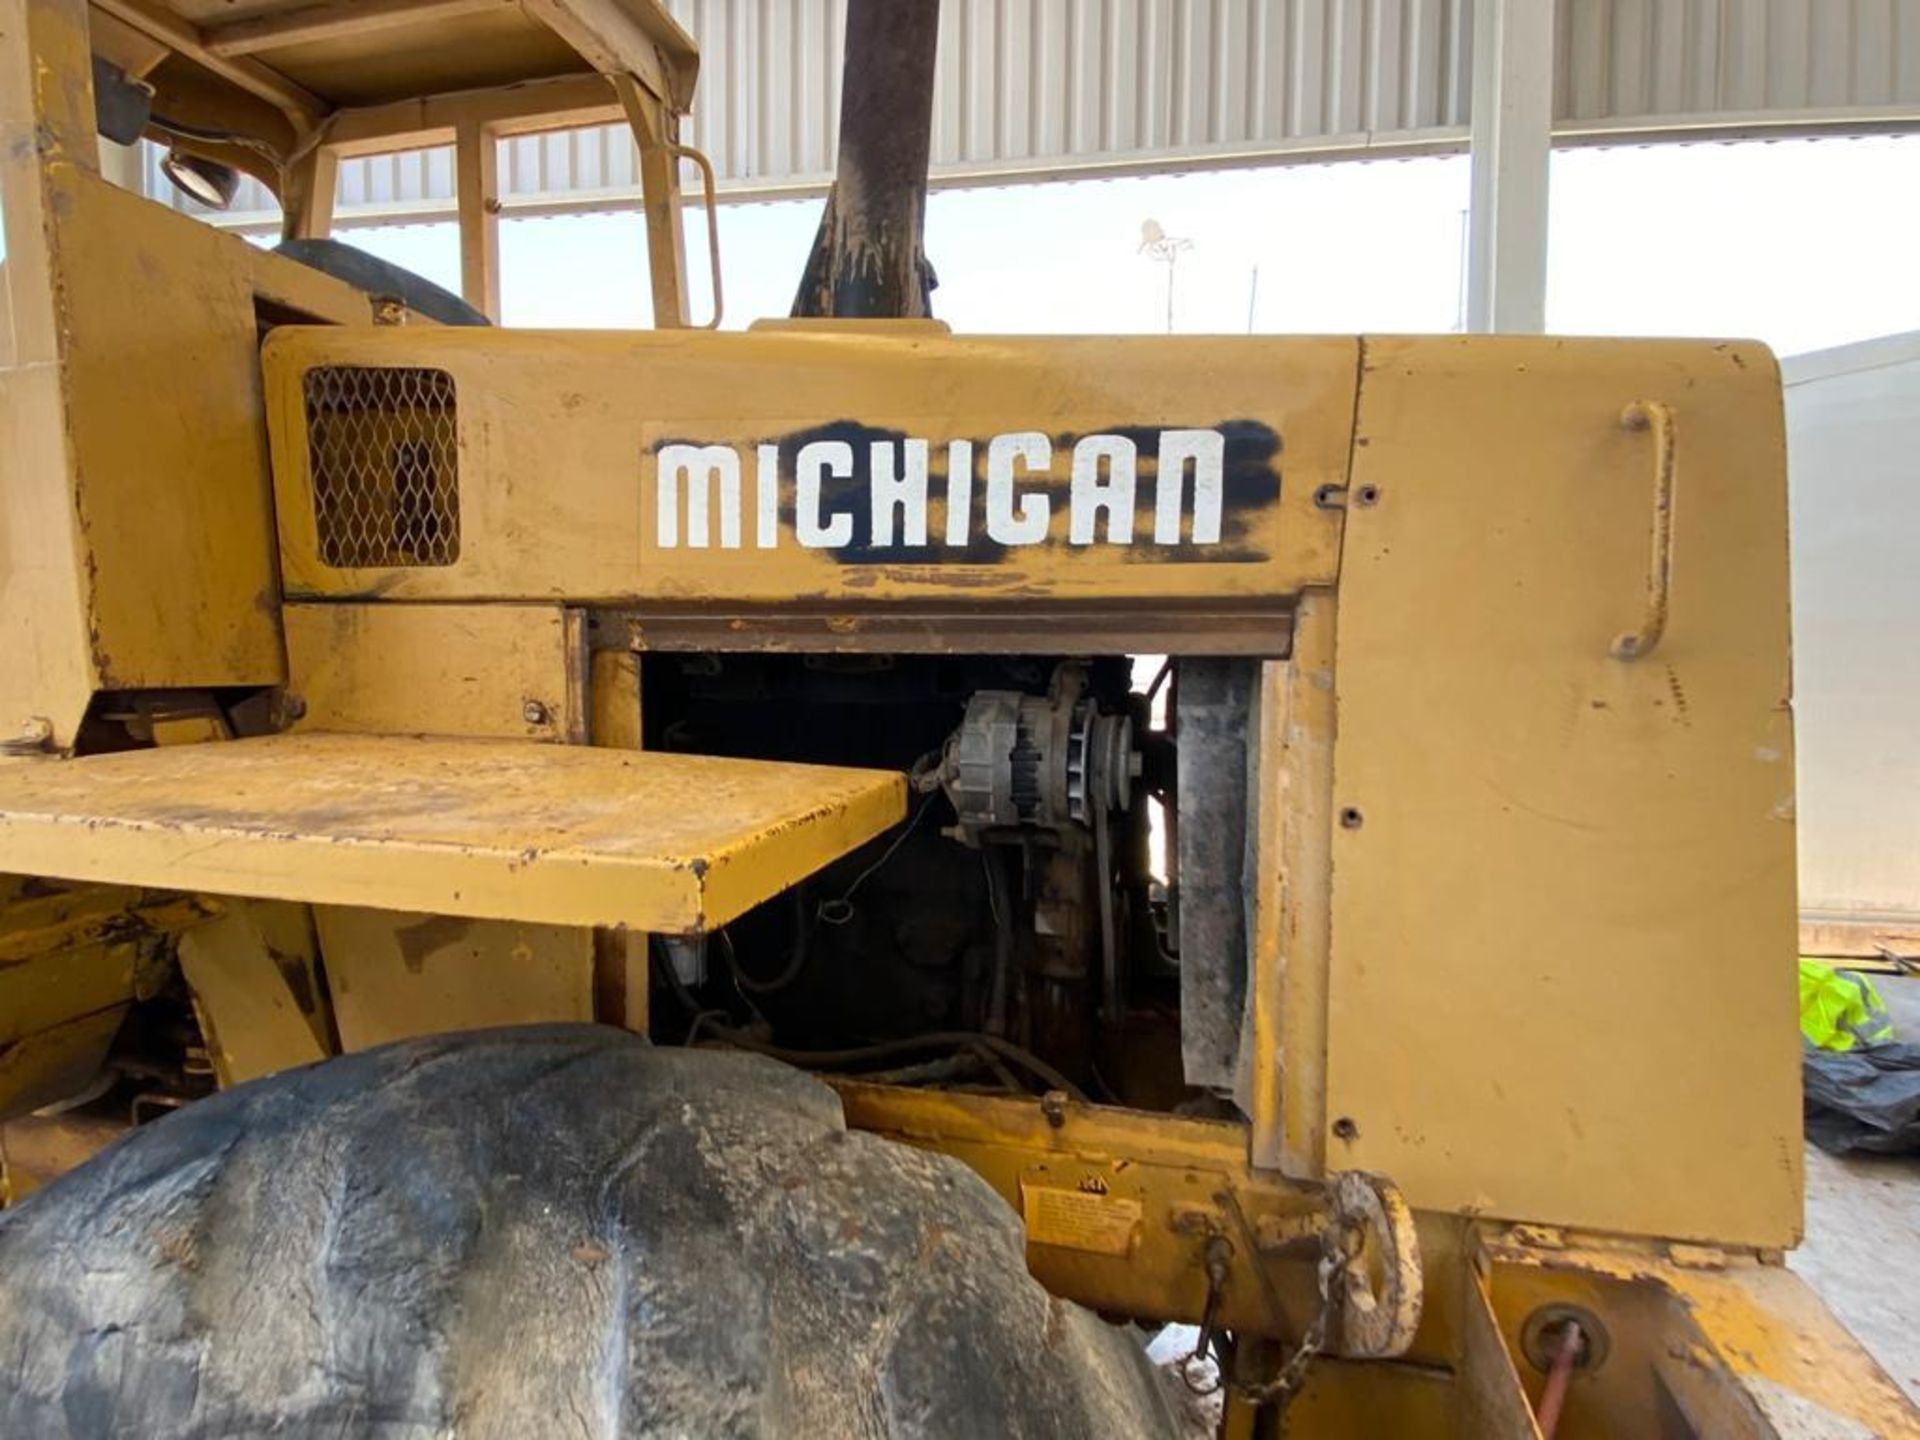 Volvo BM TYPE L 30 Michigan Front Loder, automatic transmission - Image 43 of 53